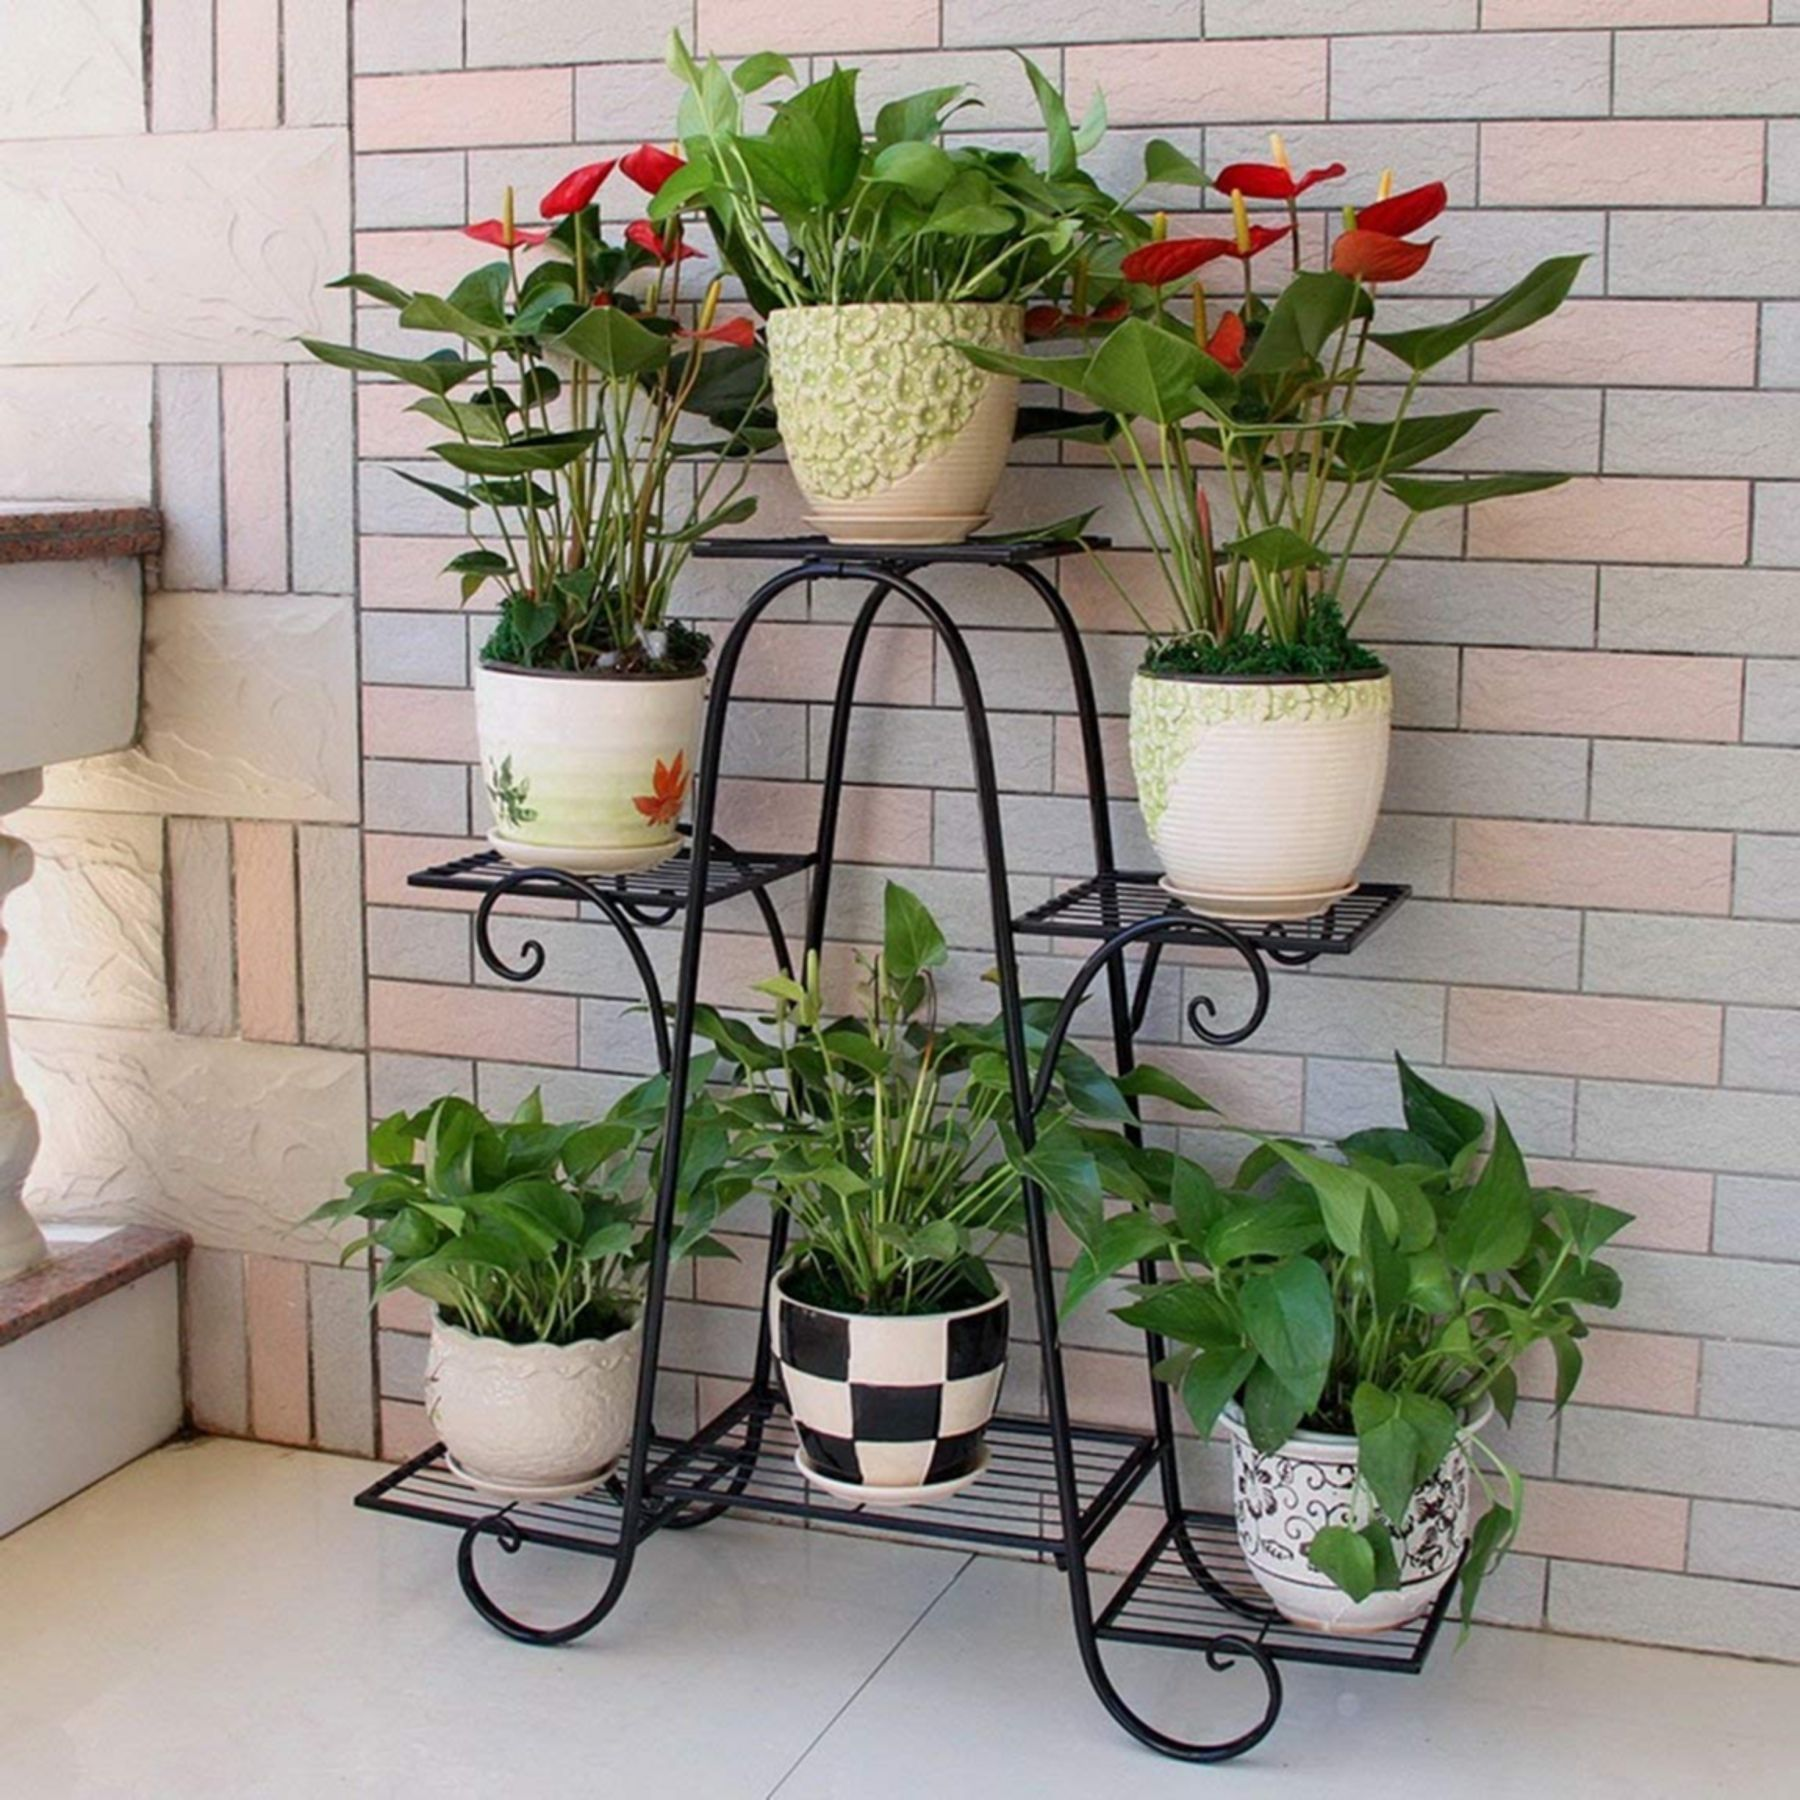 10+ Cheap and Easy Flower Shelf Design Ideas For Your Home ... on Iron Stand Ideas  id=92331